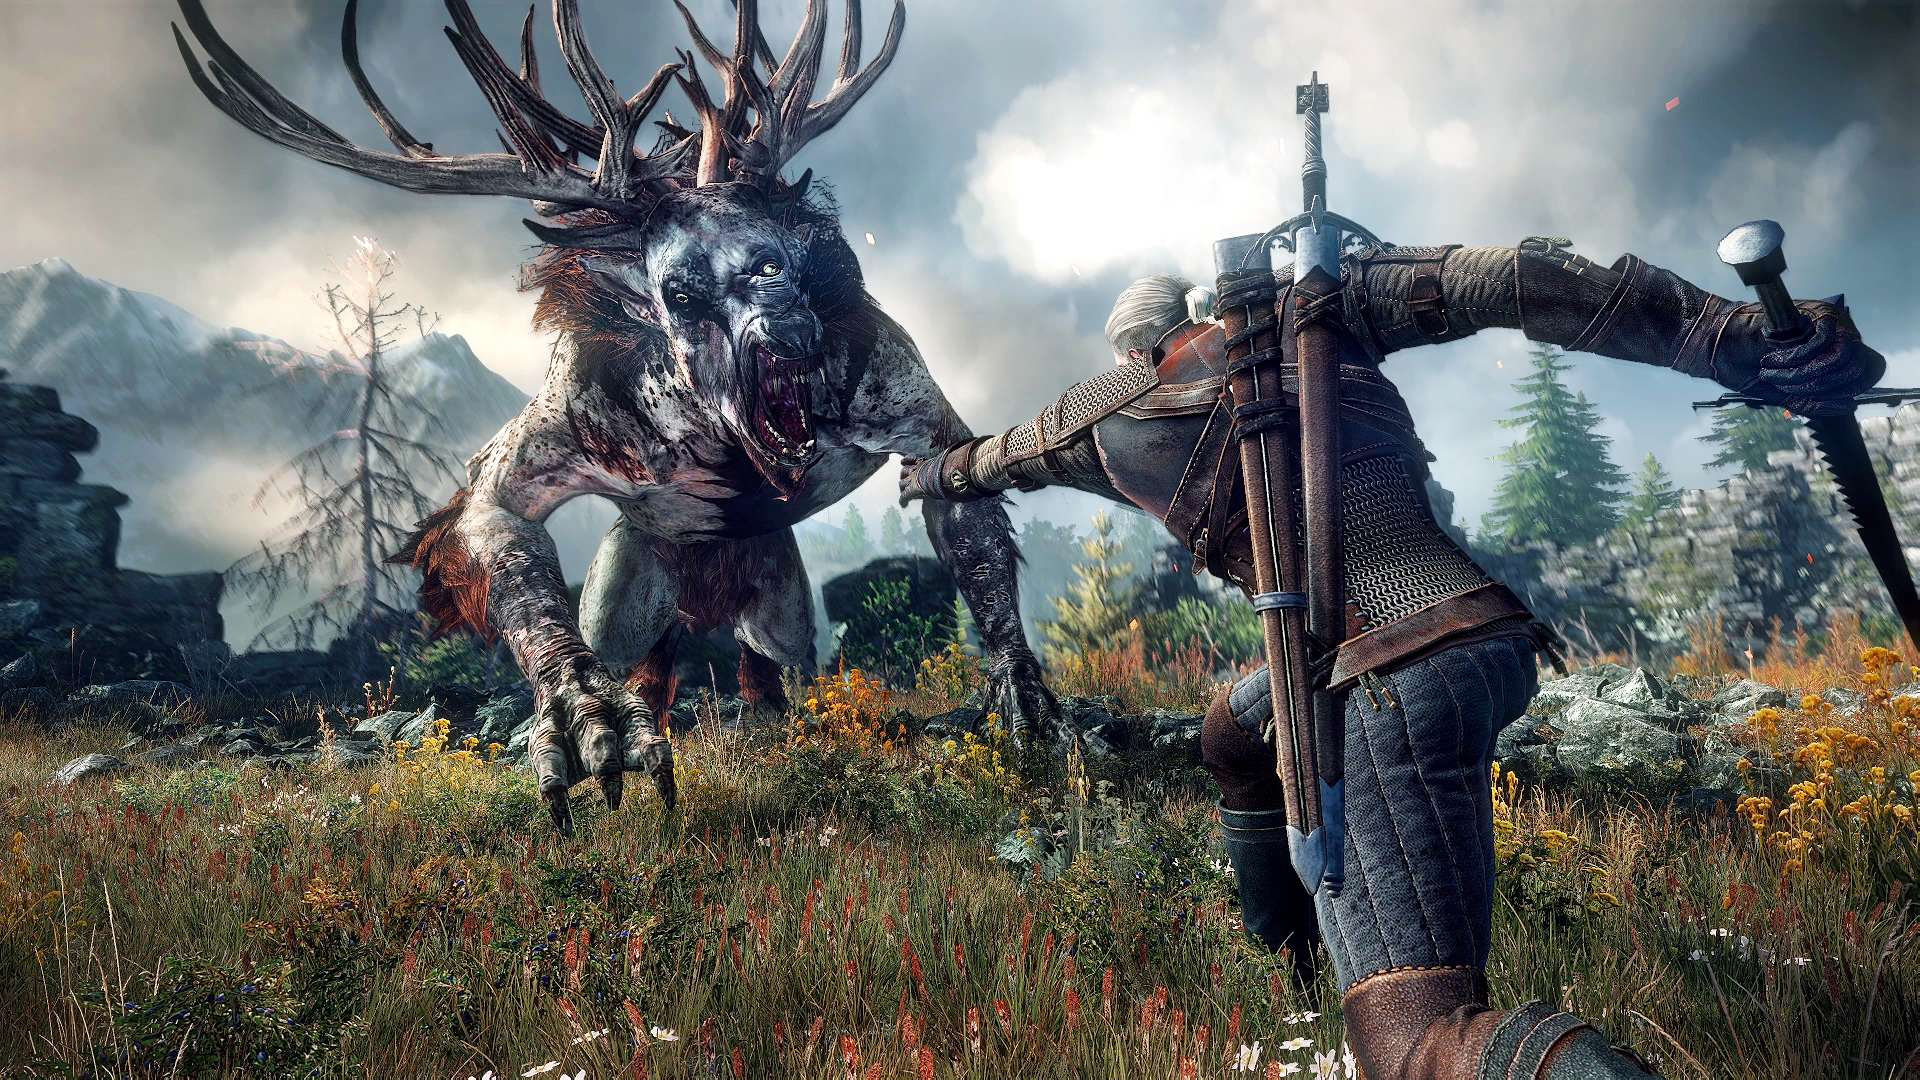 Witcher 3 Game Of The Year Edition Gets Incredible First Trailer 311 2 1439551173